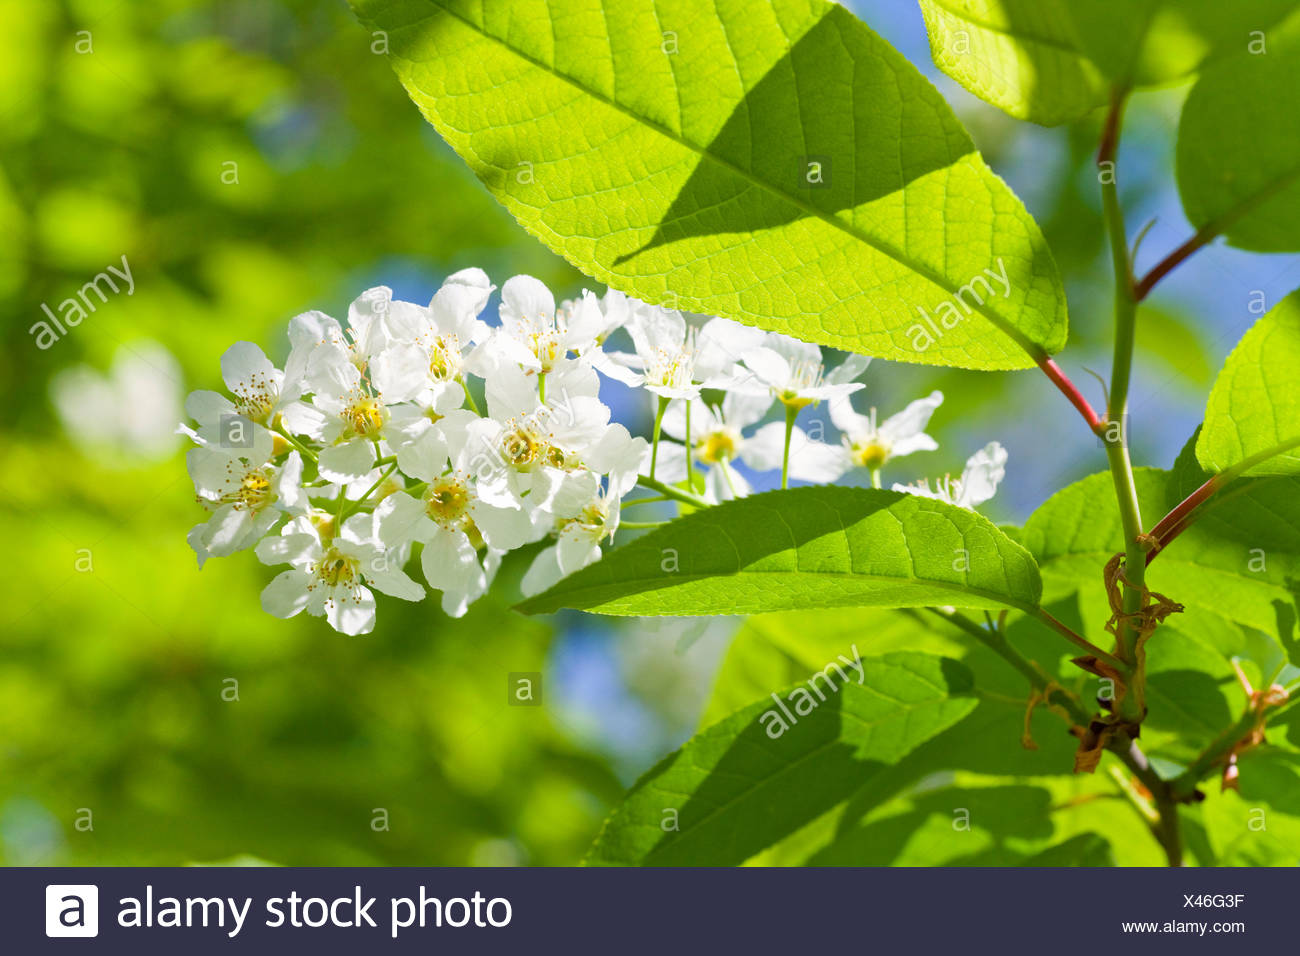 Blossoms of a bush, Salzburger Land, Austria, close-up - Stock Image